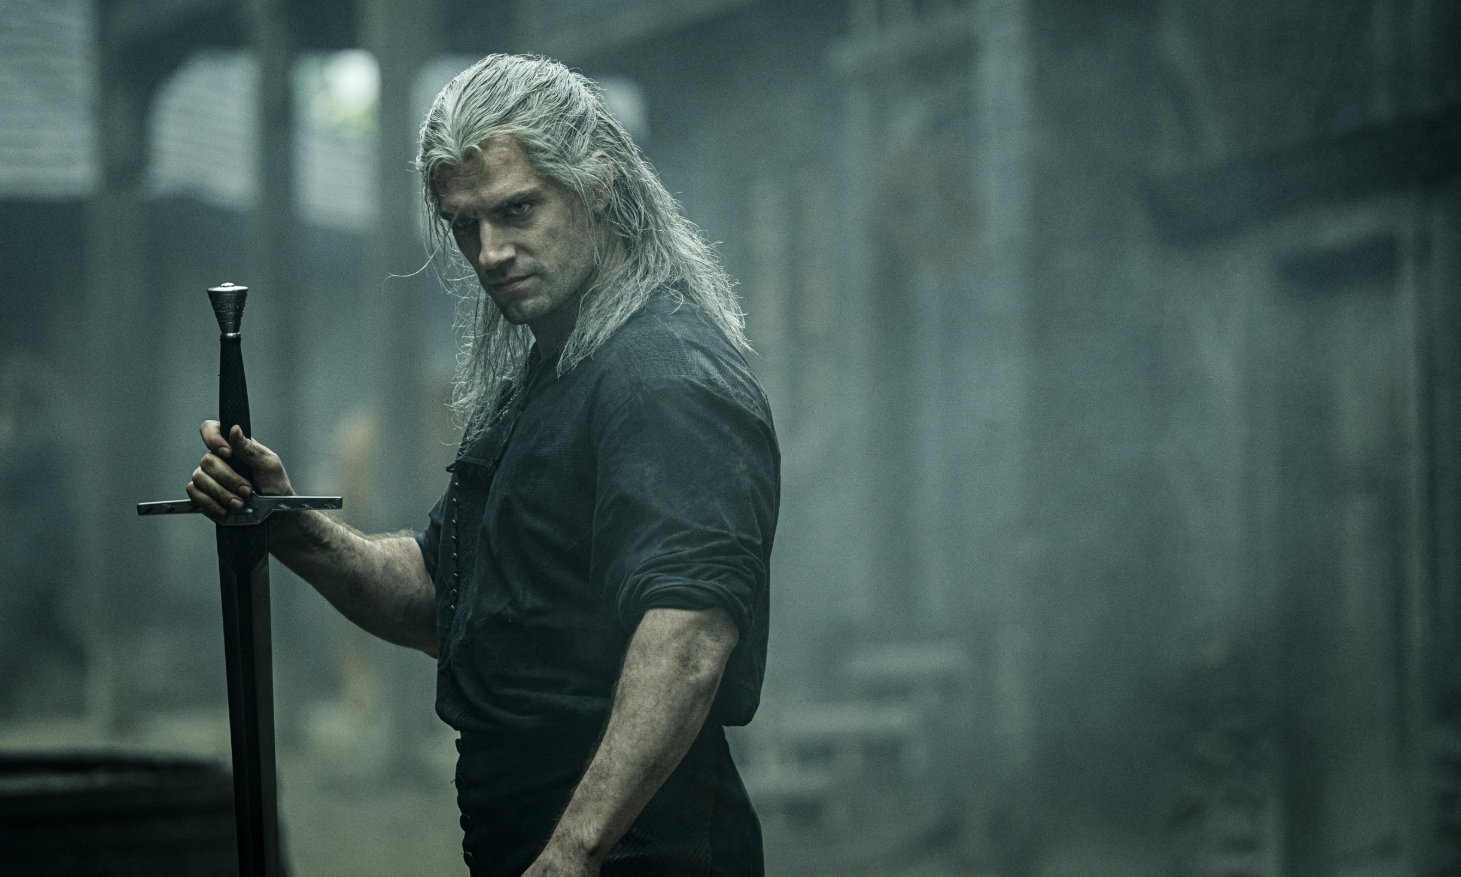 Henry Cavill as The Witcher.